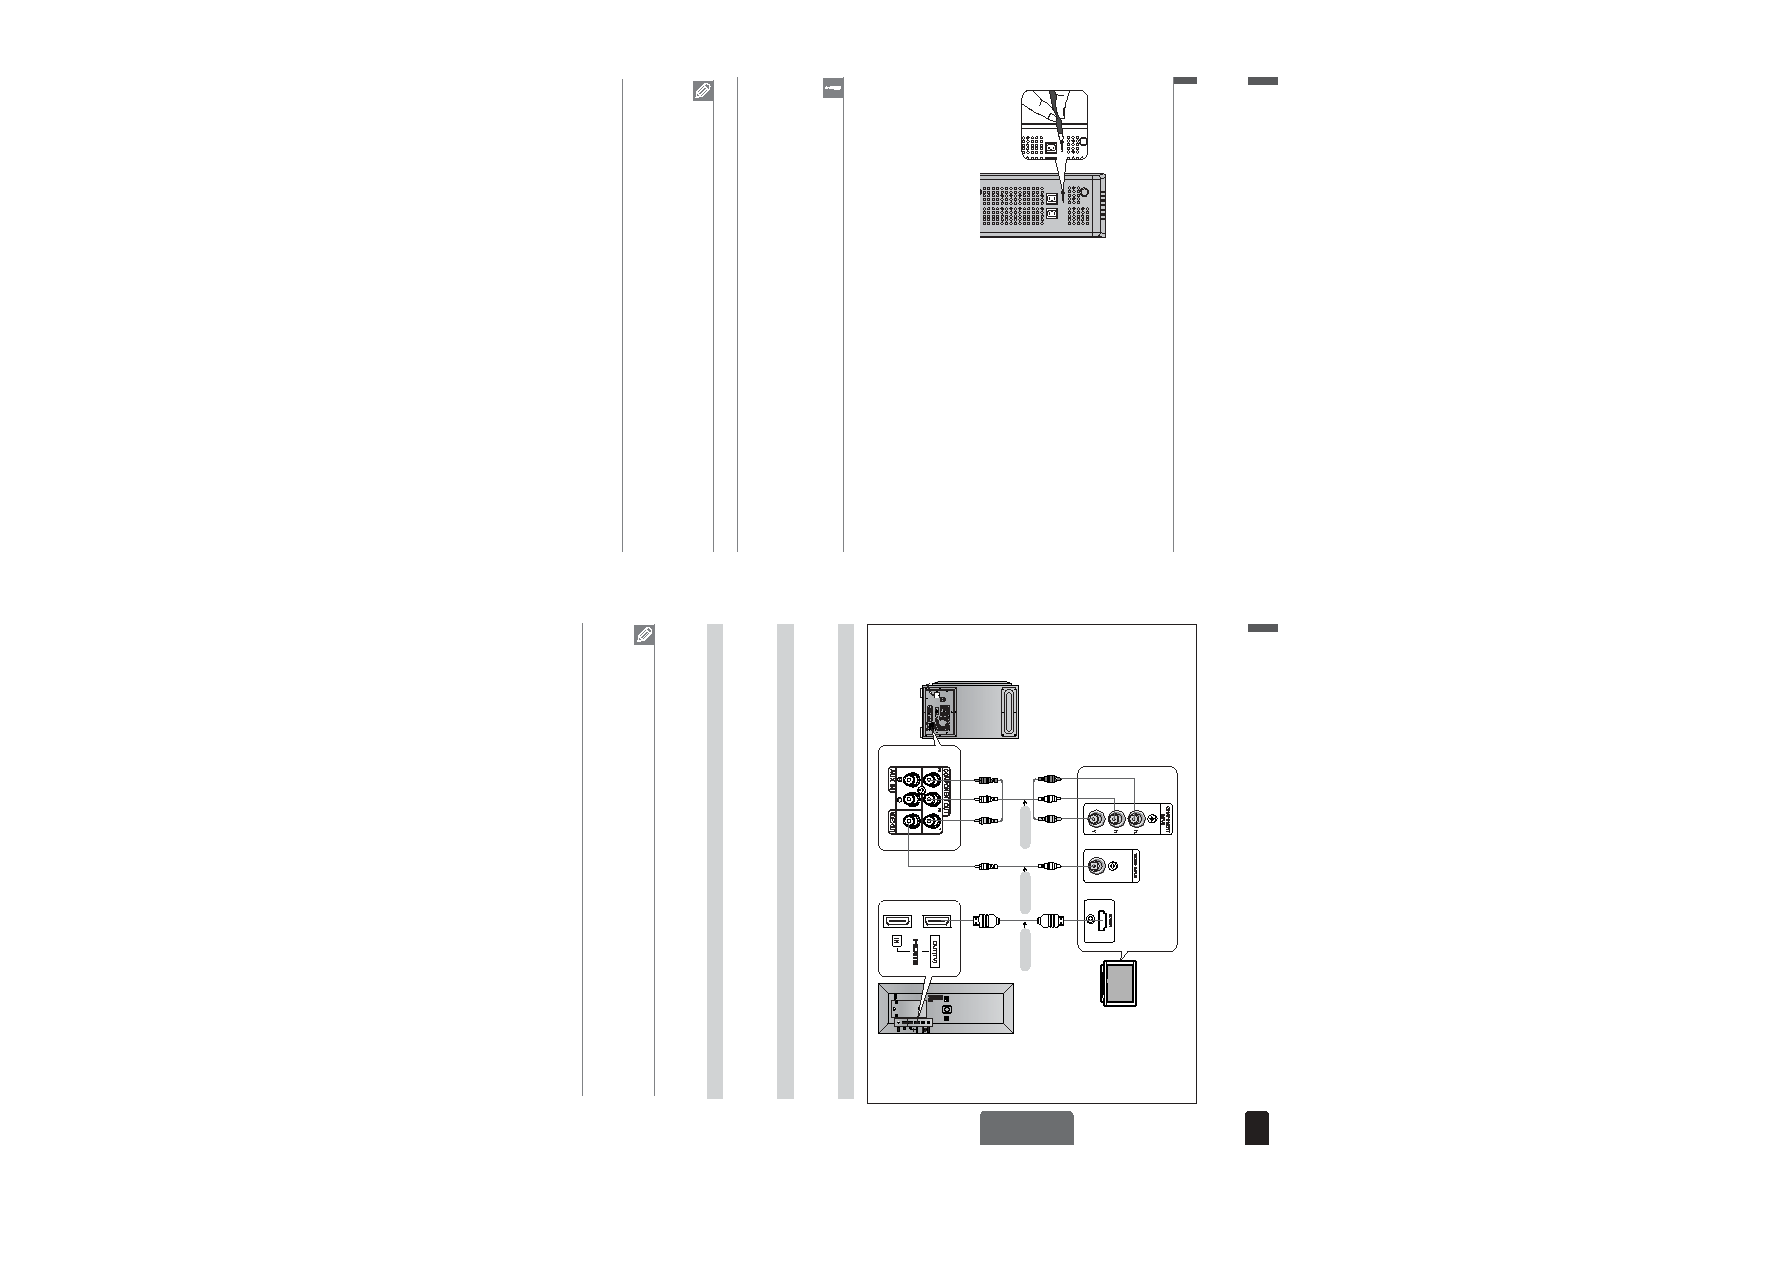 Samsung HT TXQ120 User Manual ver10 Page 10 as of